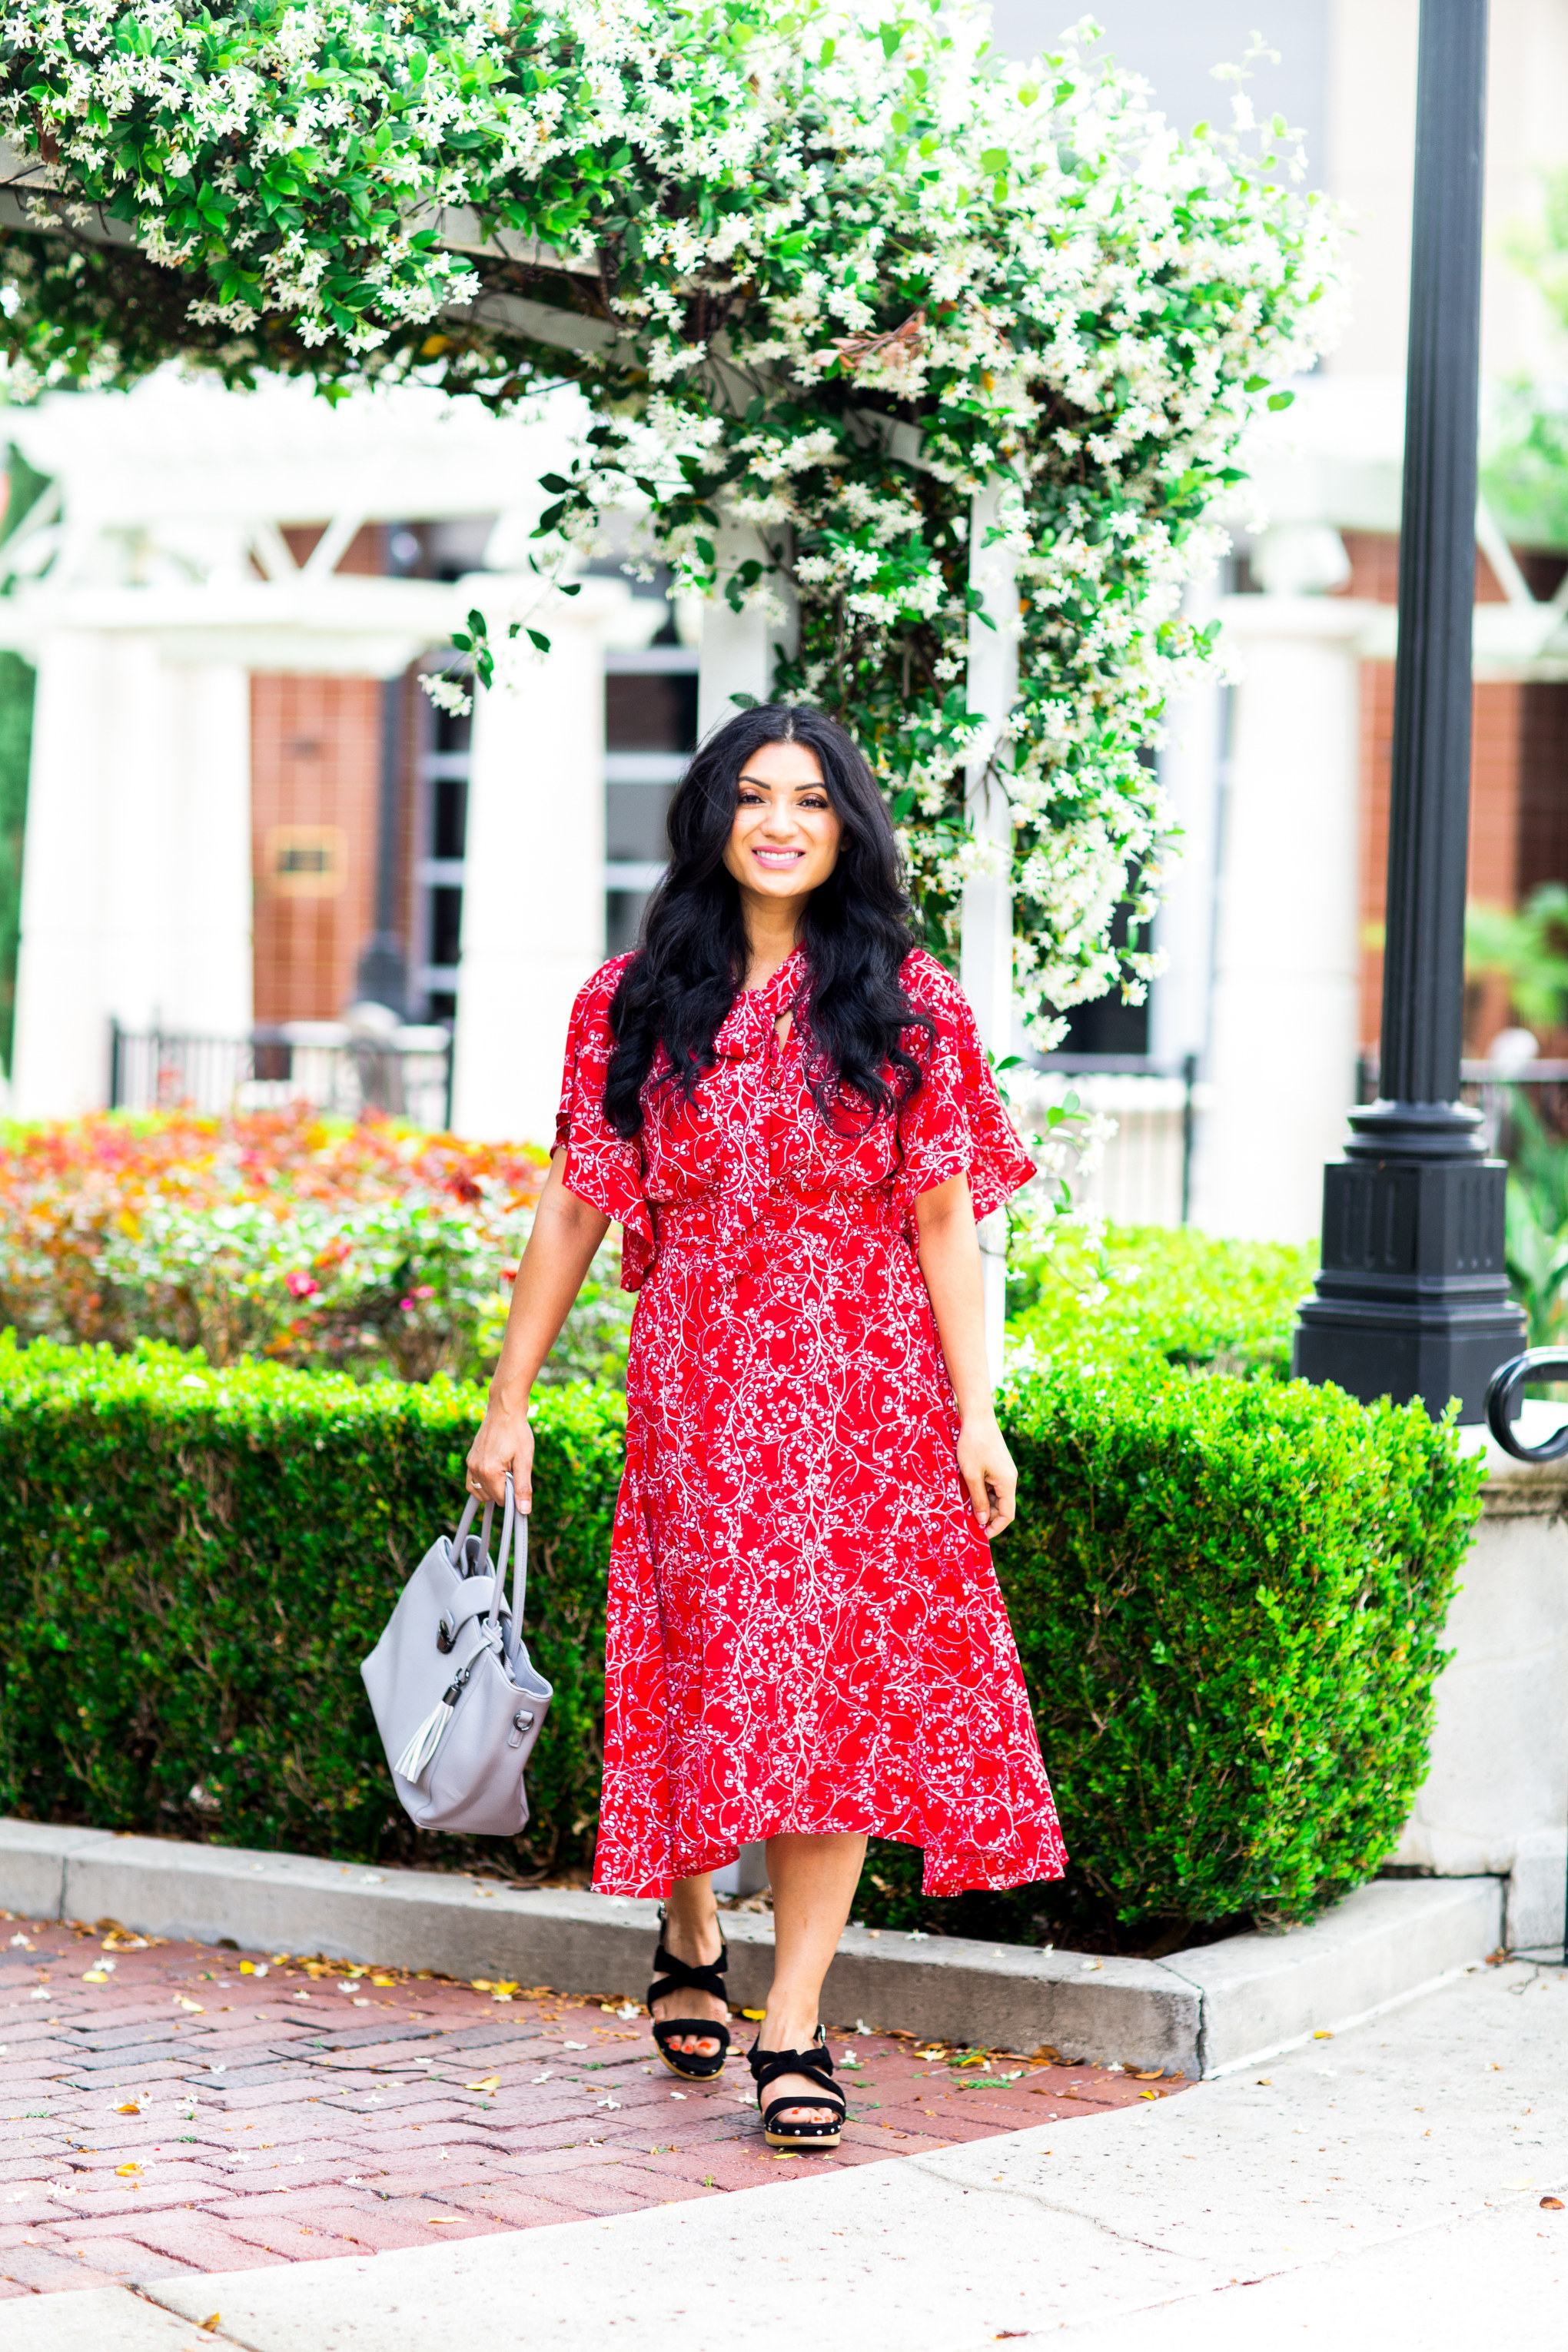 Looking for the perfect maxi dress this summer? Orange County Blogger Debbie Savage is sharing her favorite maxi dress from Max Studio here!